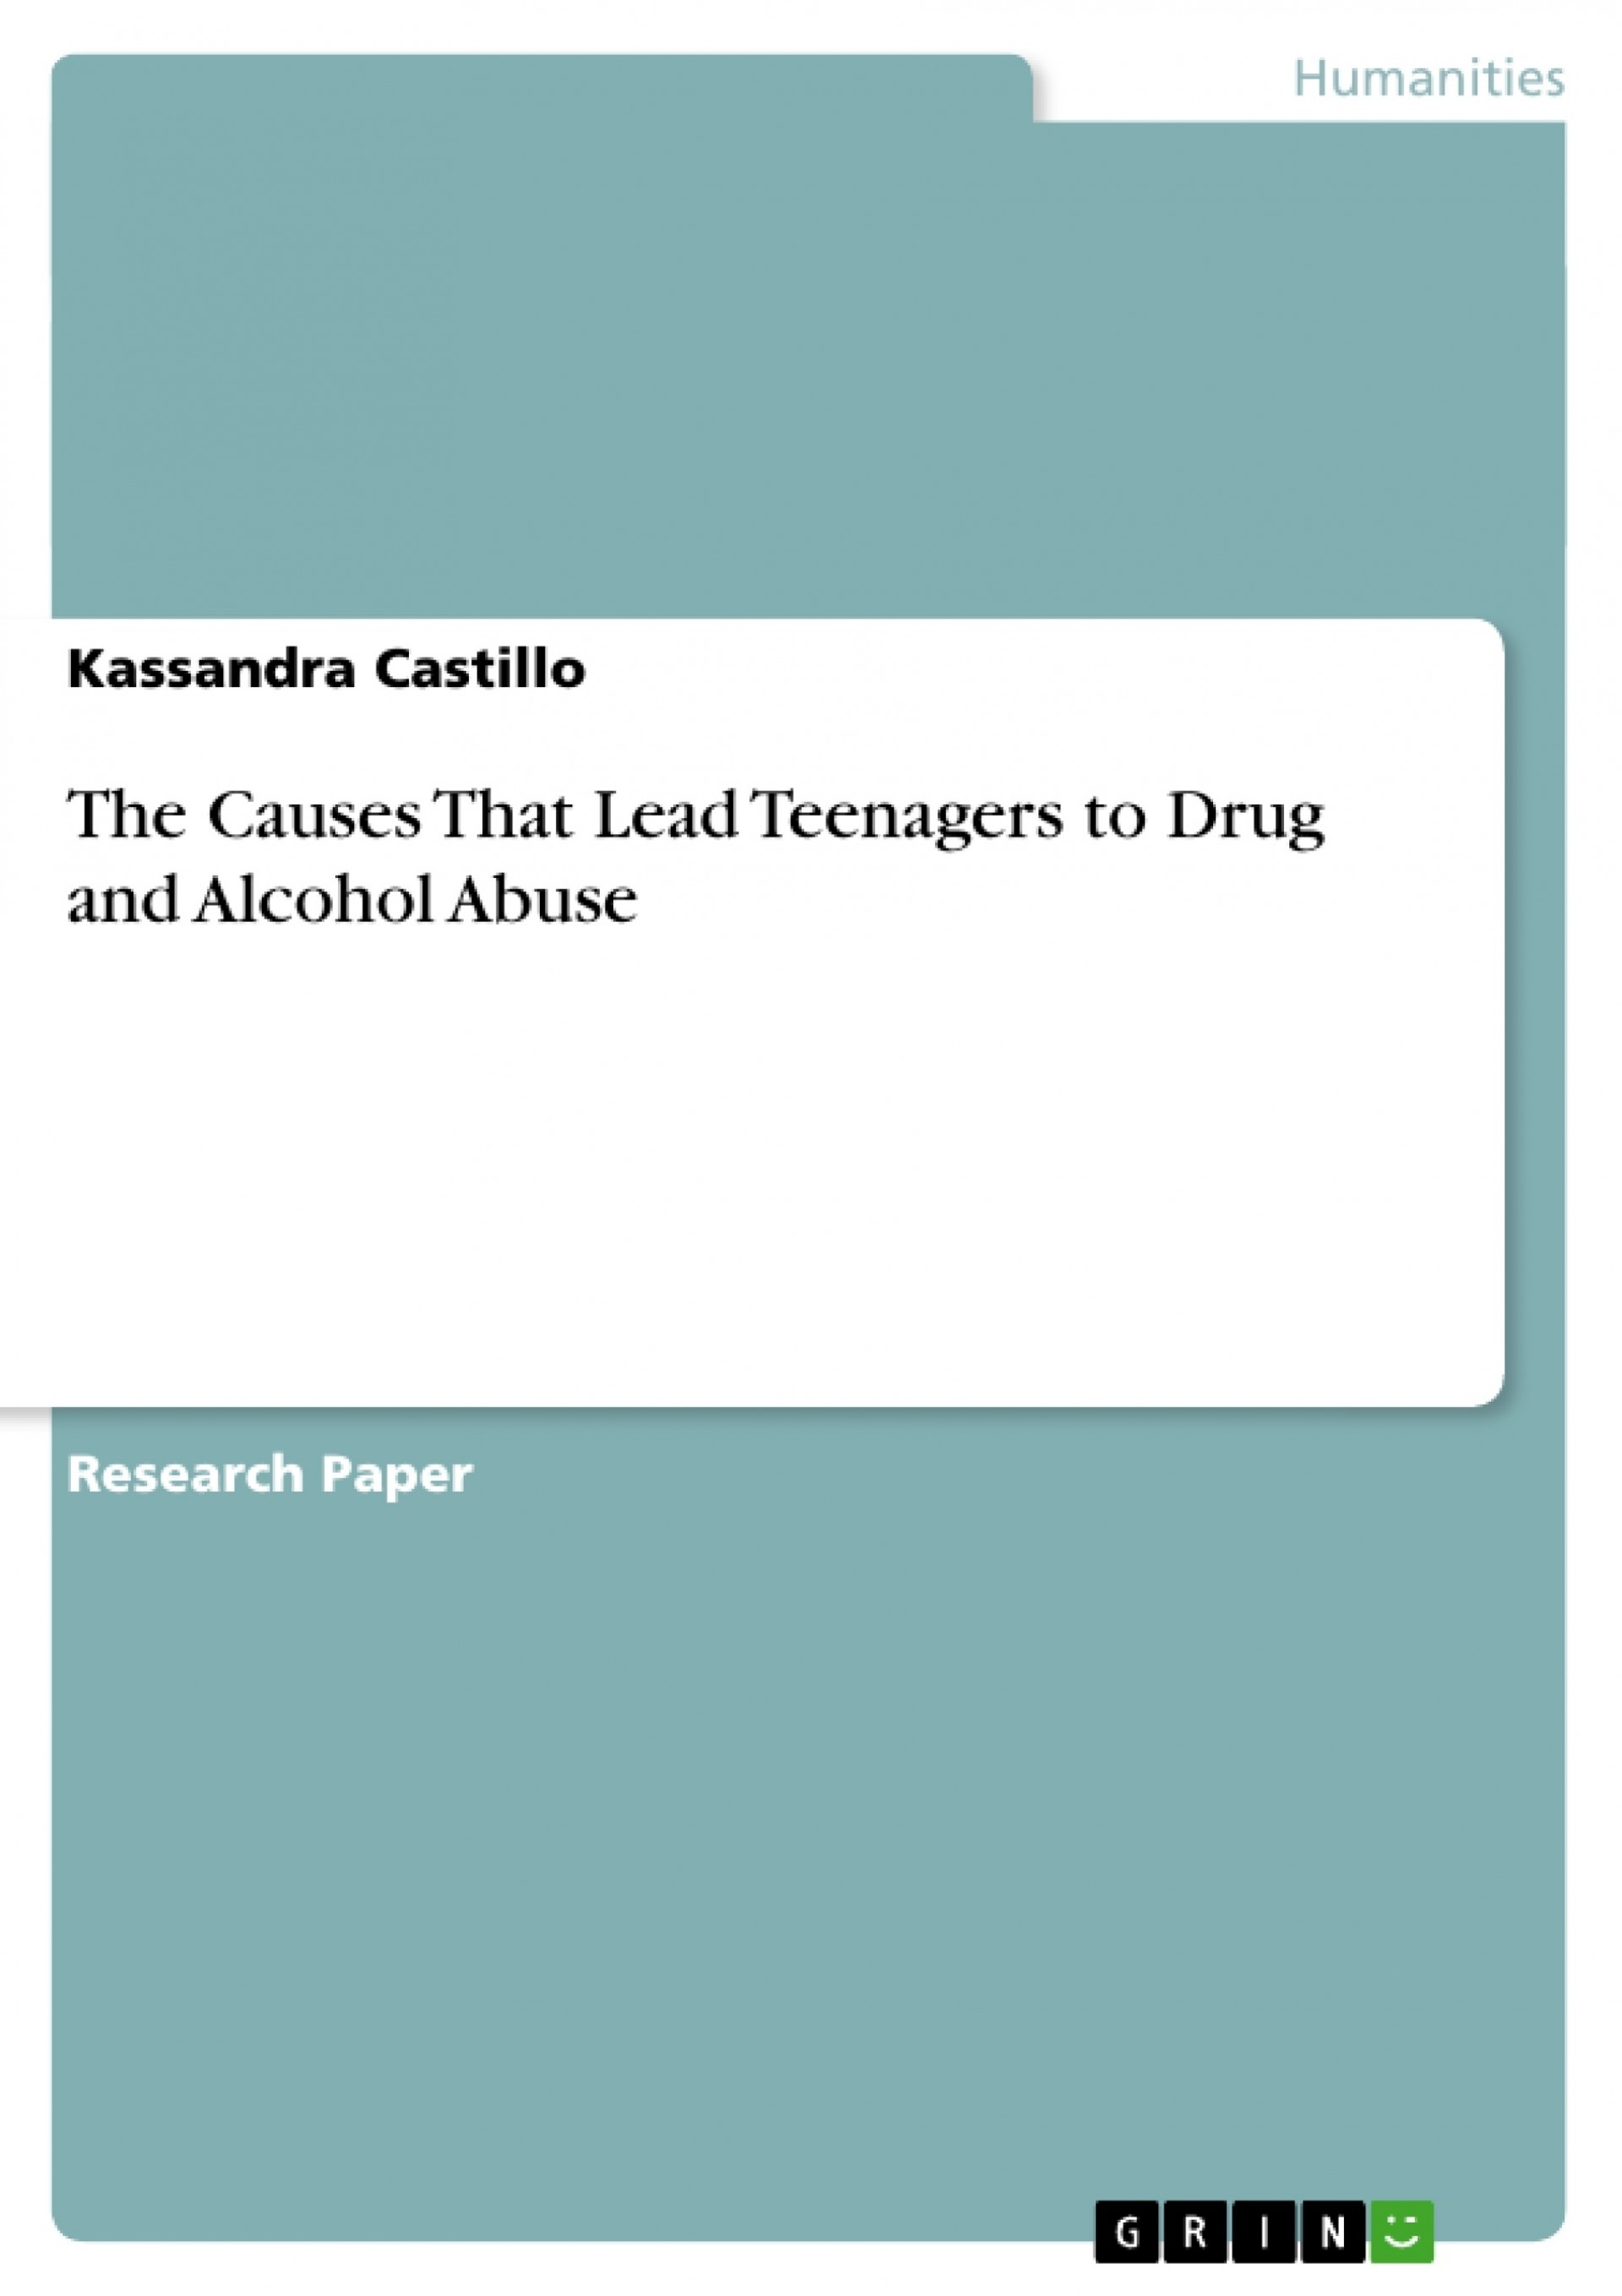 010 Research Paper 125033 0 Conclusion For Fantastic Alcoholism 1920